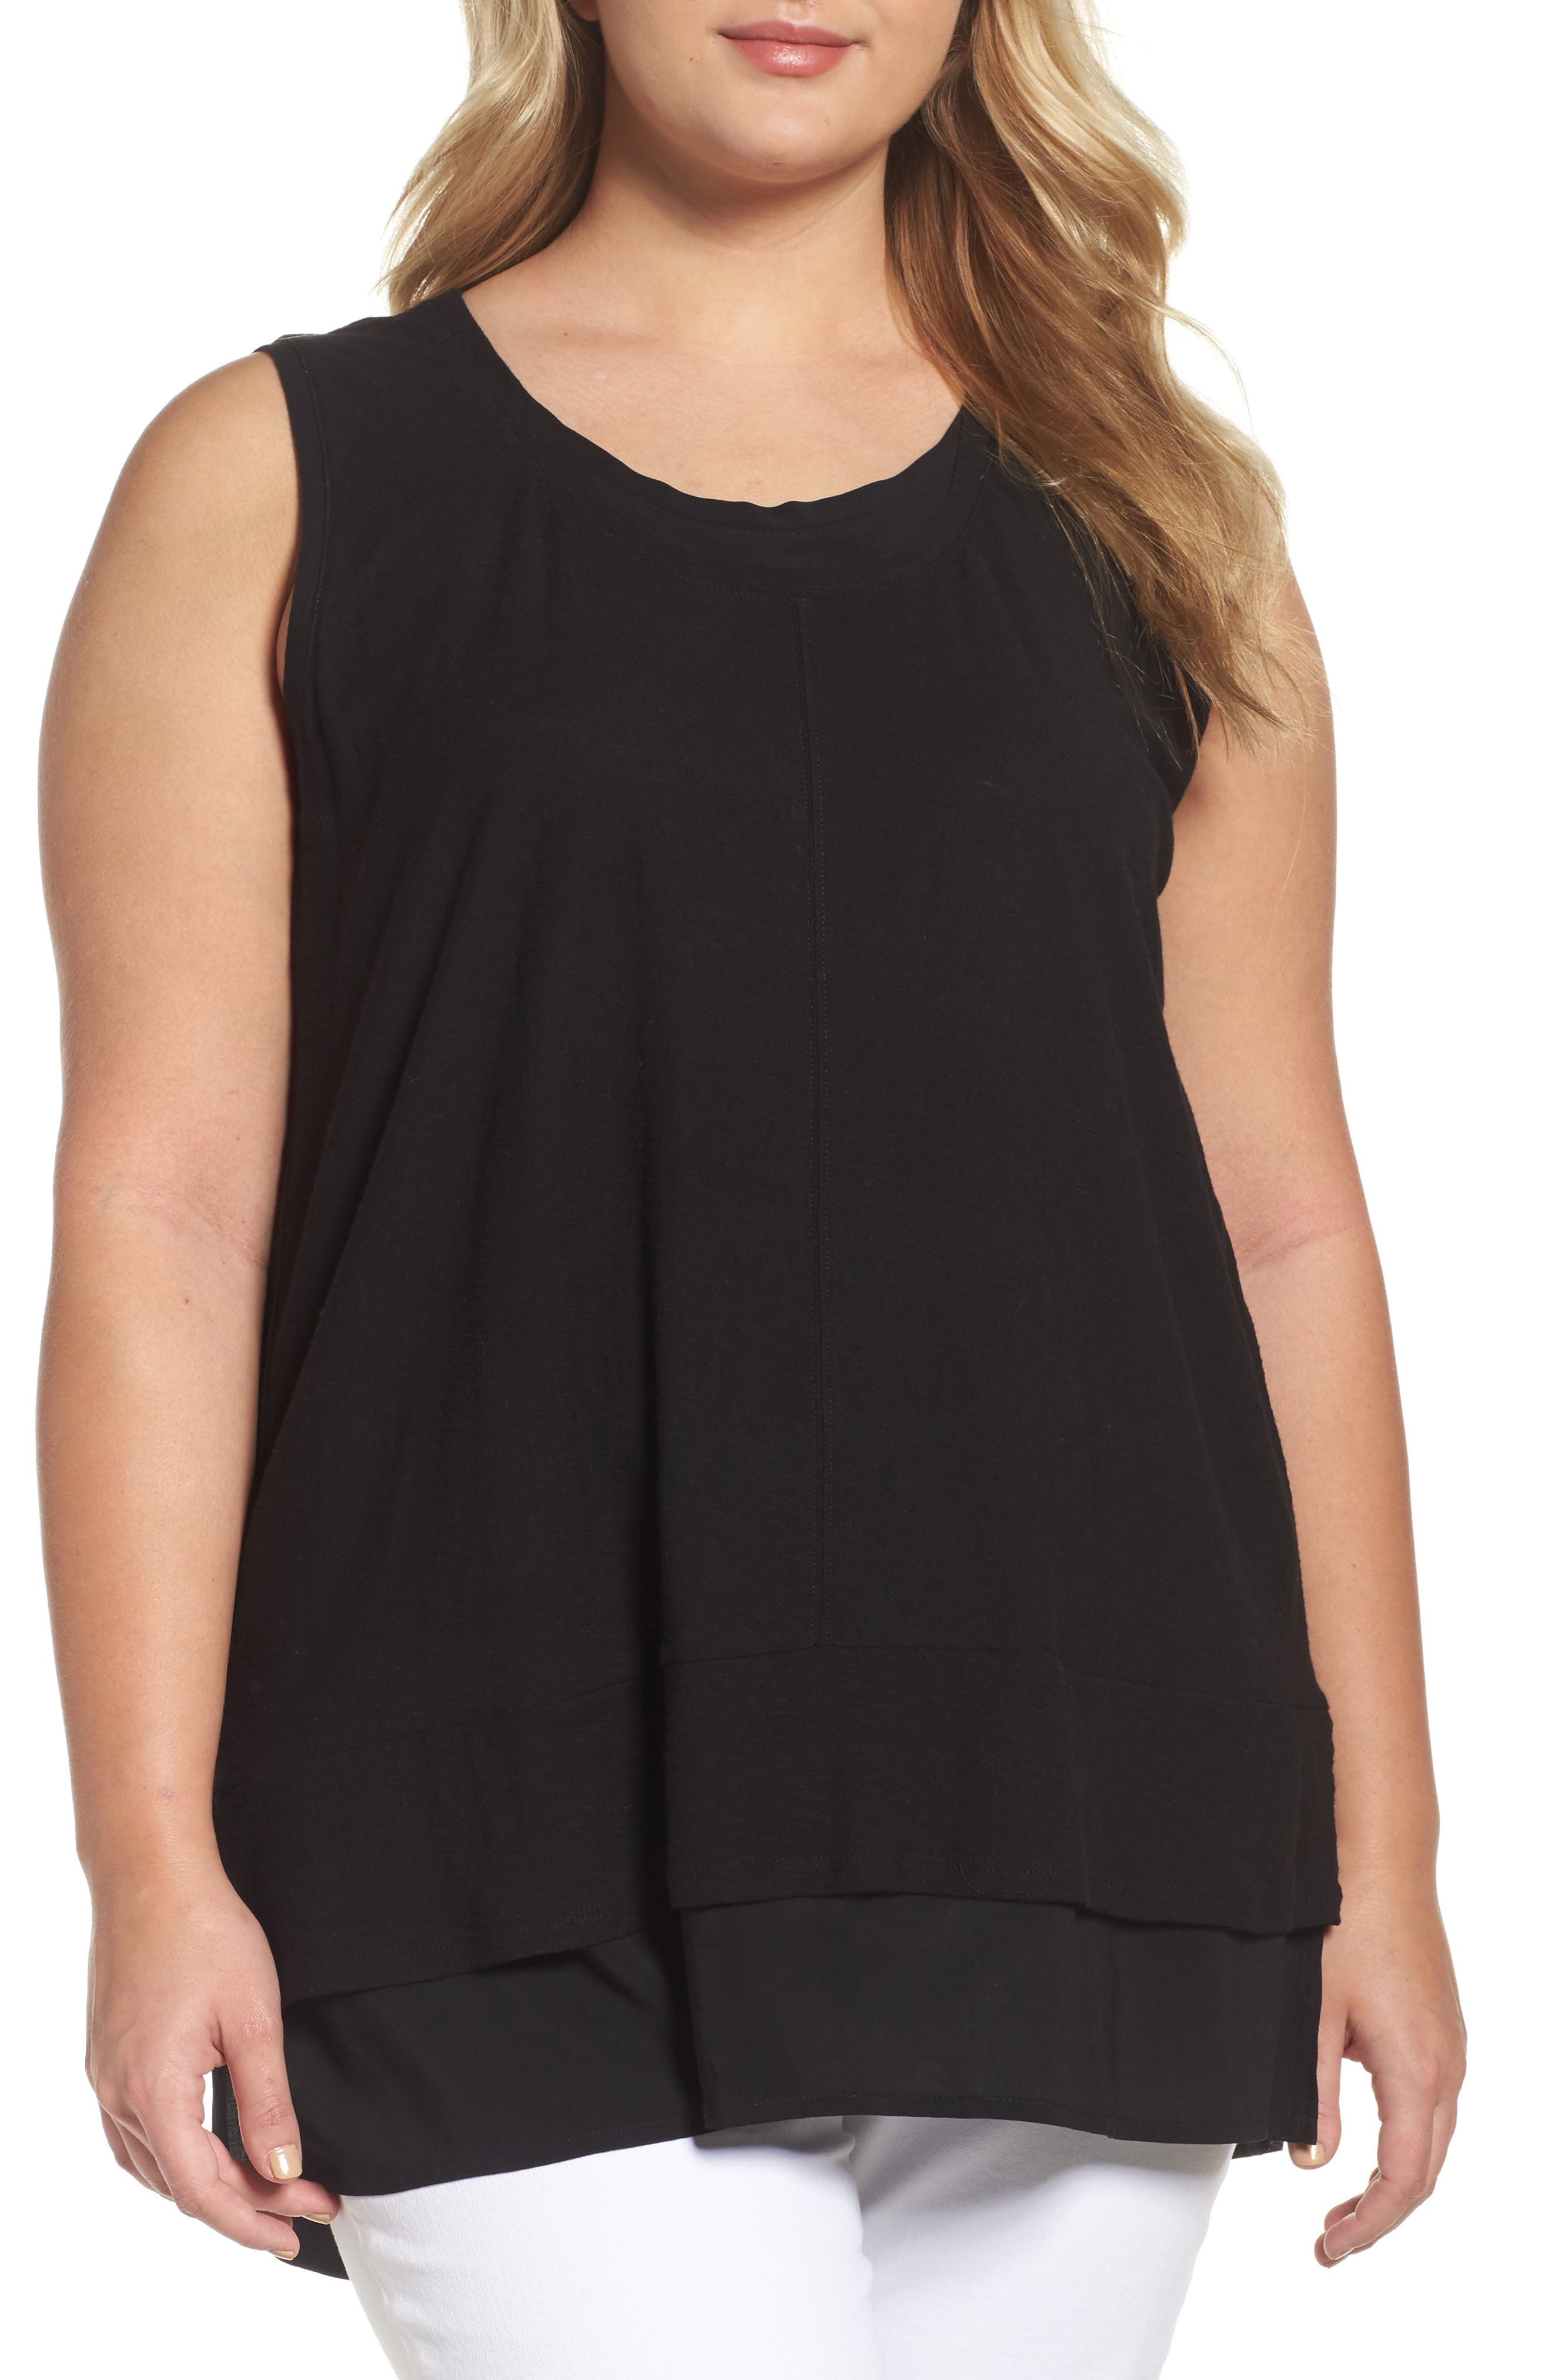 Vince Camuto Mixed Media Sleeveless Top,                         Main,                         color, Rich Black